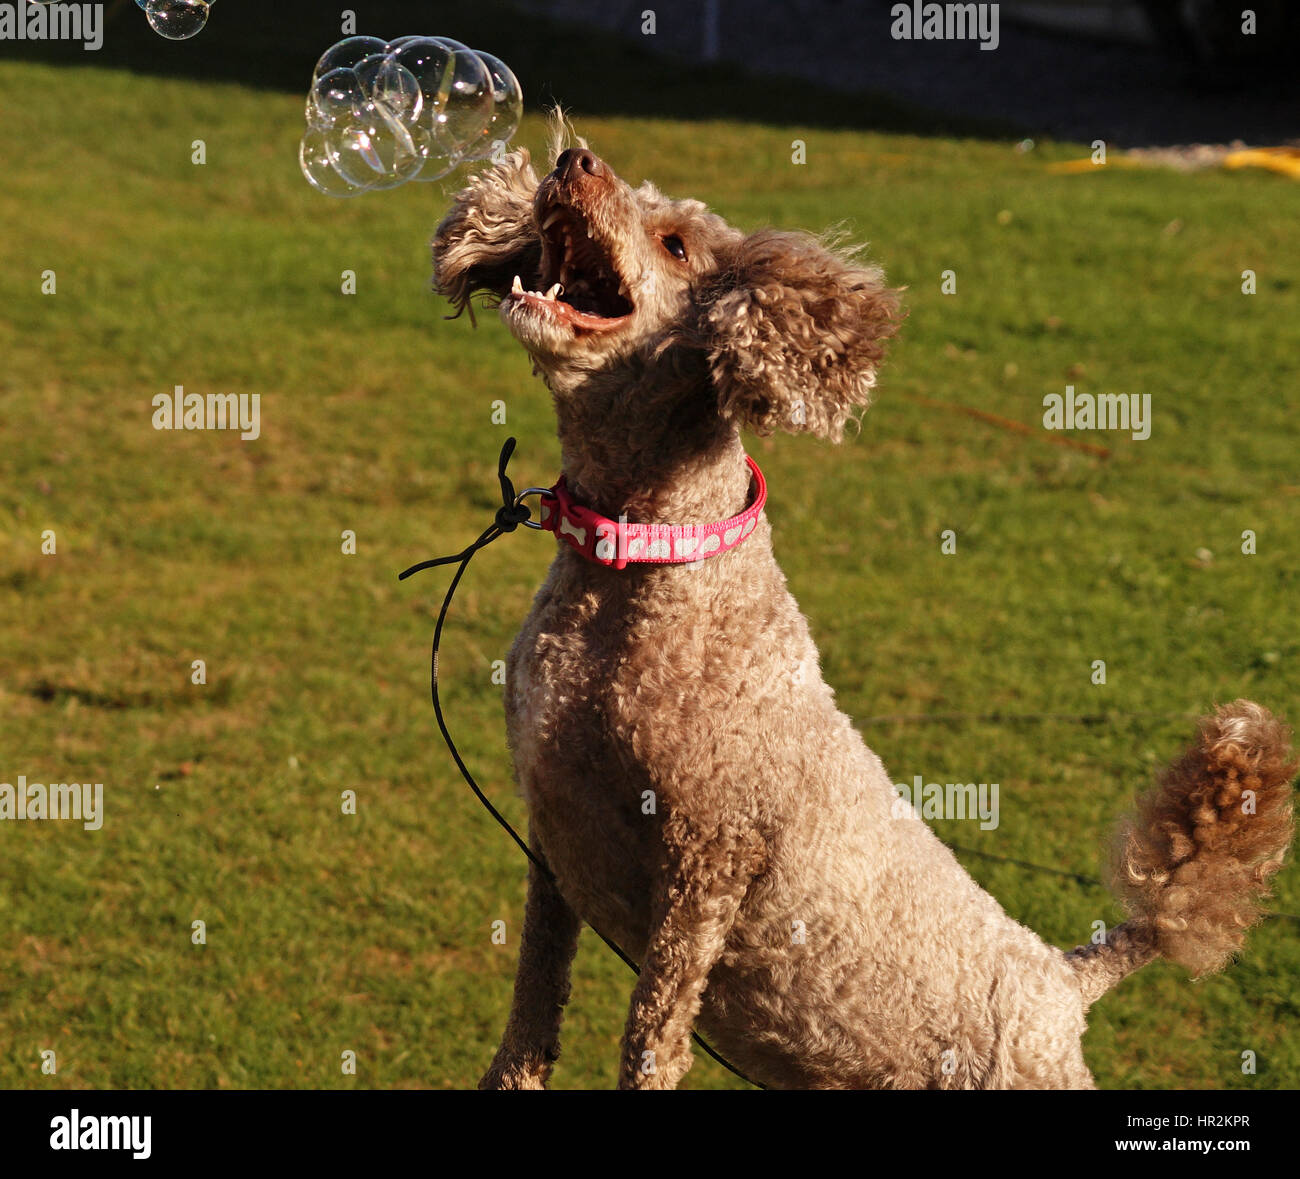 Poodles Out Adventuring and Exploring - Stock Image